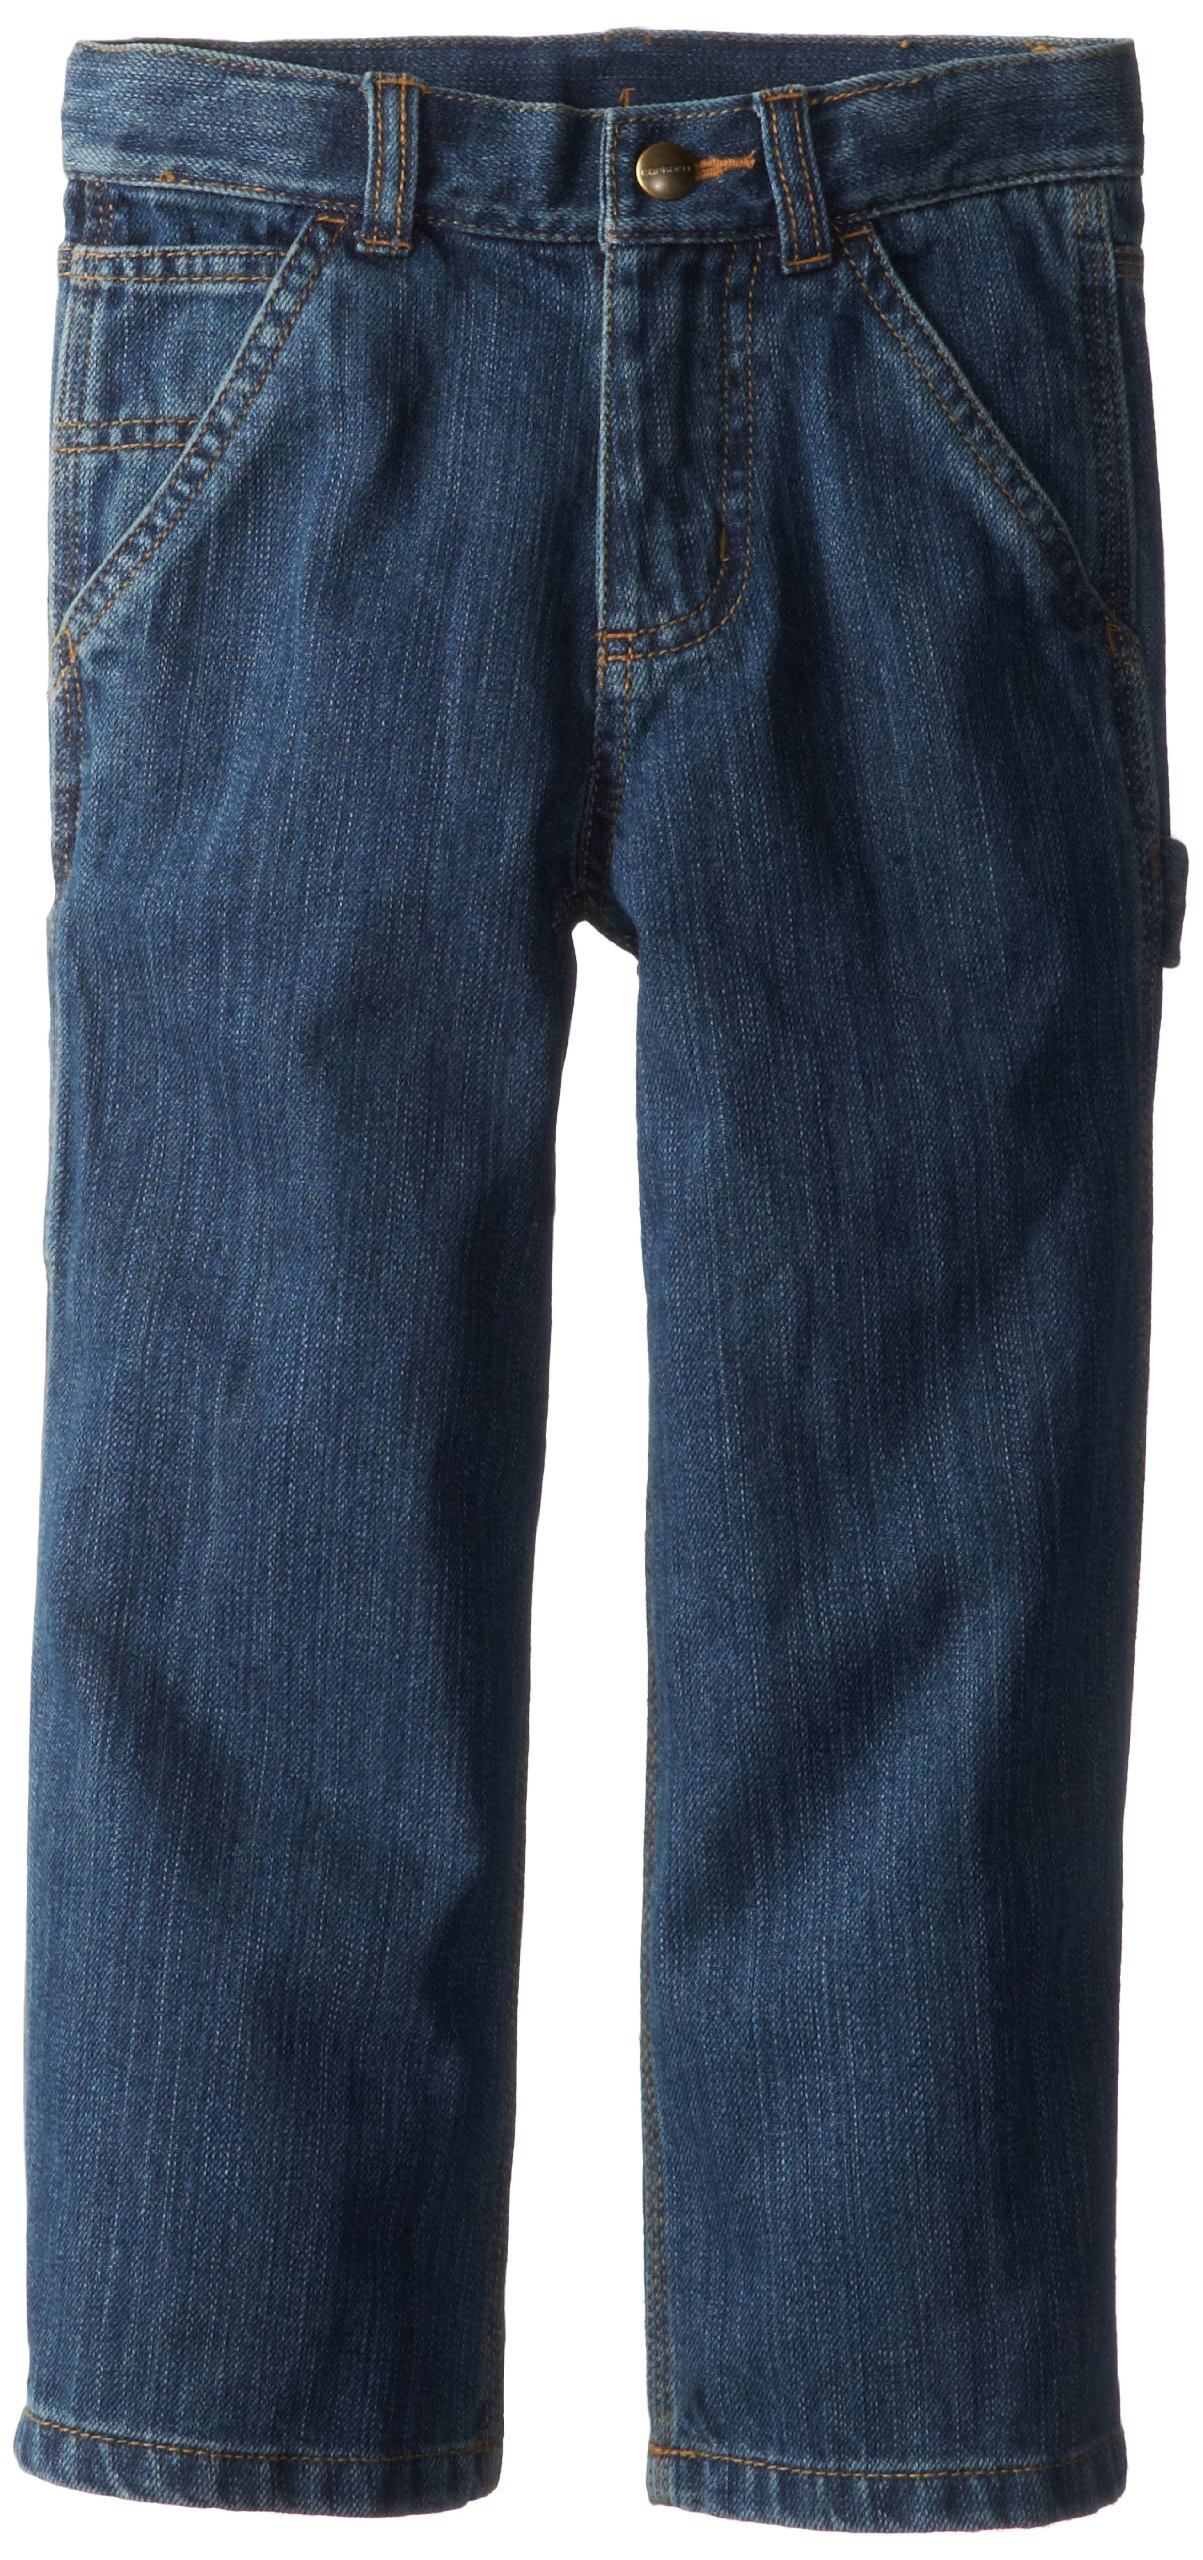 Carhartt Little Boys' Washed Denim Dungaree Jeans, Worn In Blue, 7